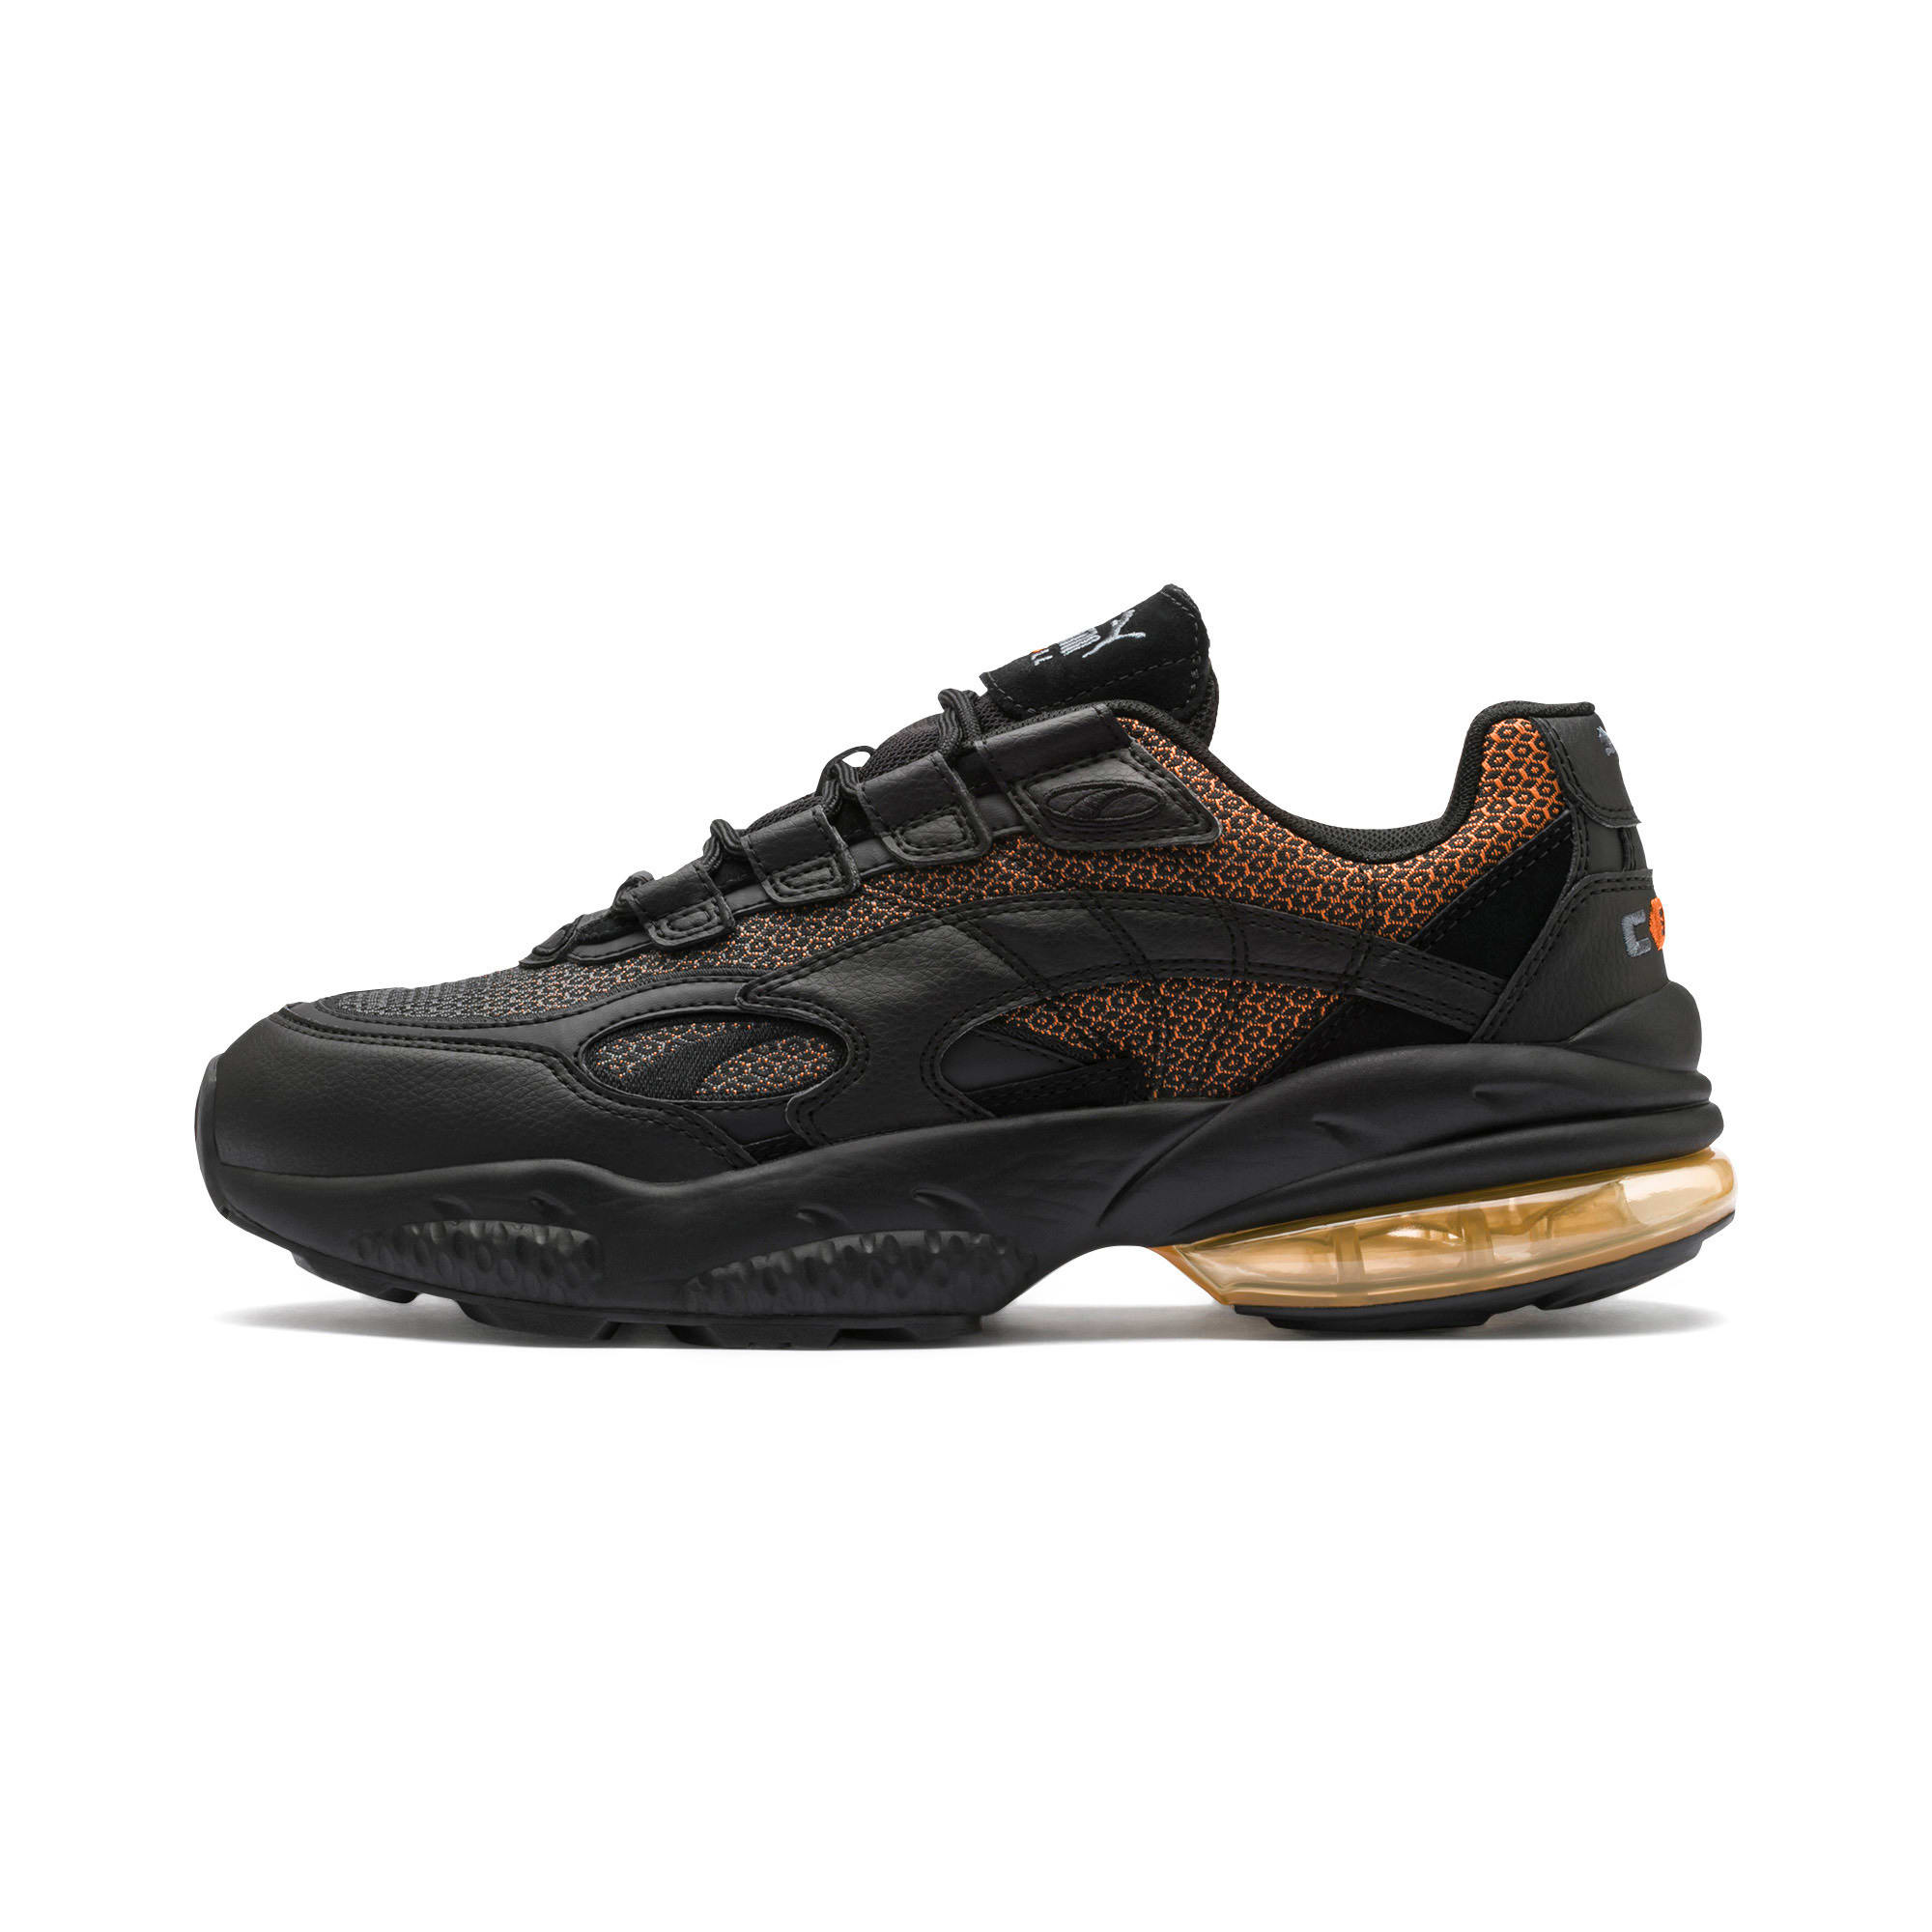 Thumbnail 1 of CELL Venom Lux Trainers, Puma Black-Jaffa Orange, medium